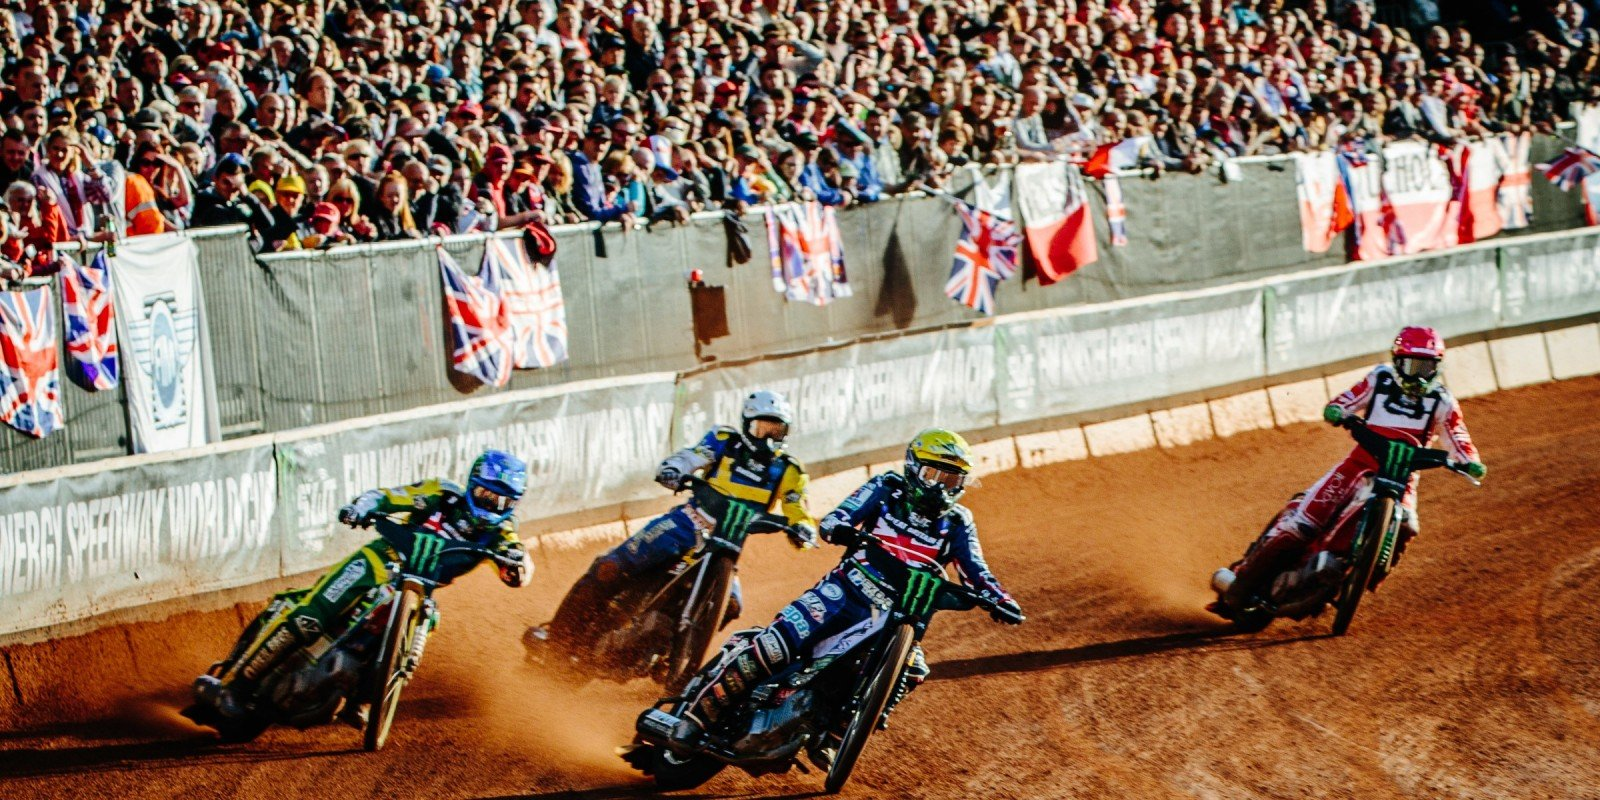 Images from the 2016 Monster Energy Speedway World Cup Final